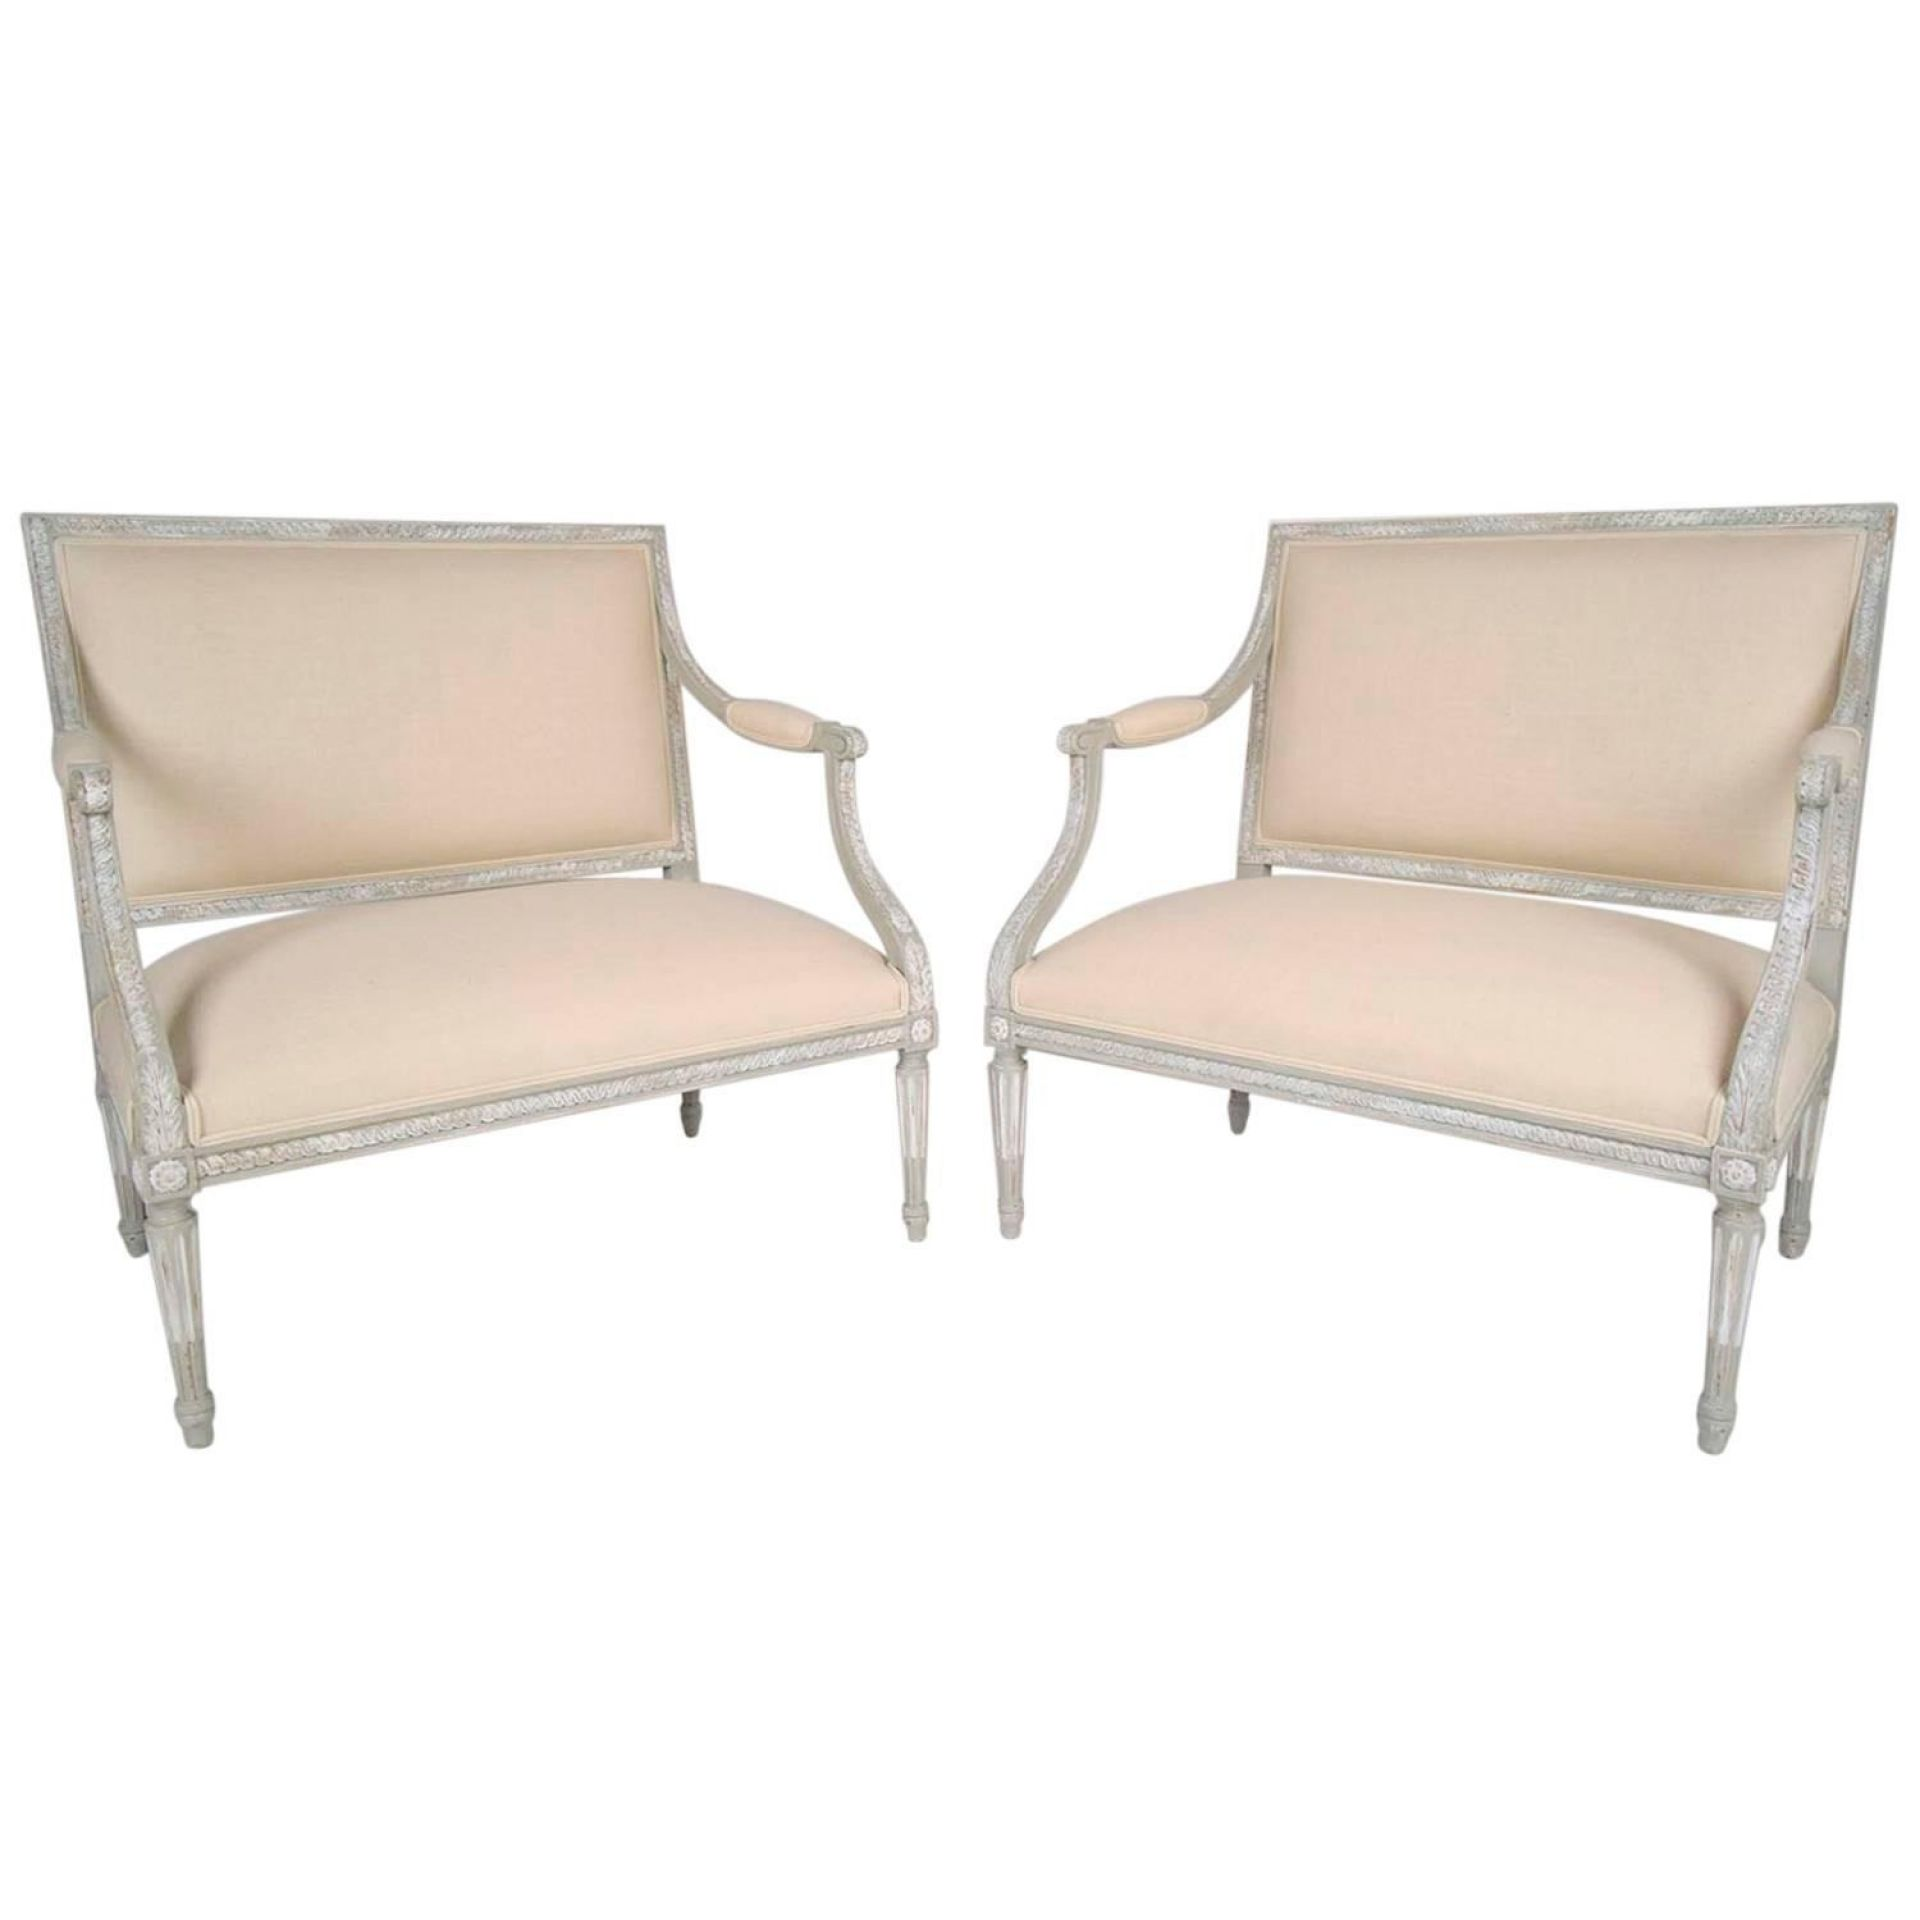 Pair of Antique French Louis XVI Wide Seat Arm Chairs